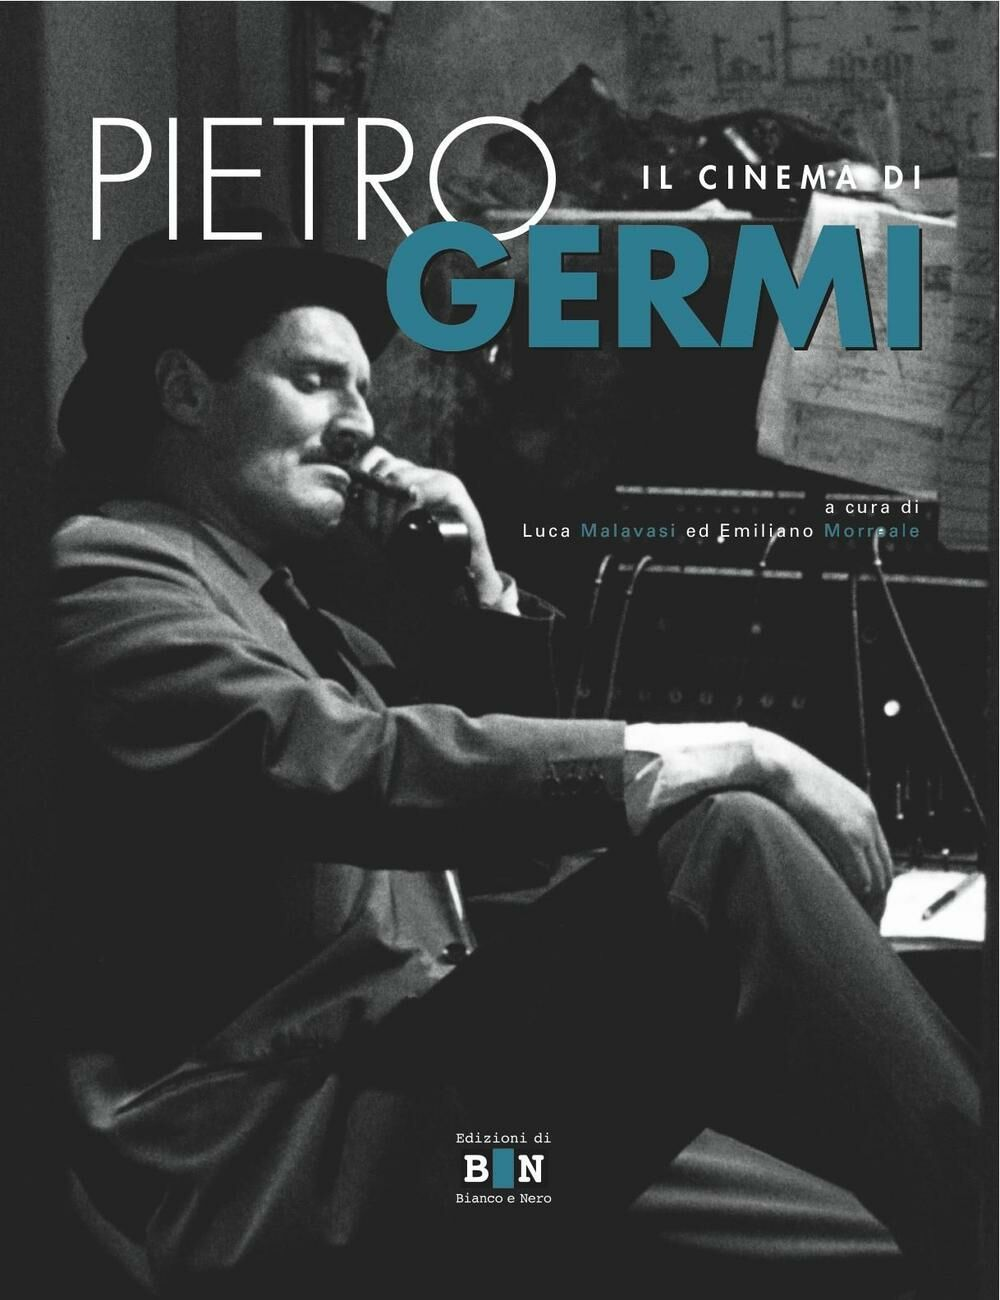 Il cinema di Pietro Germi